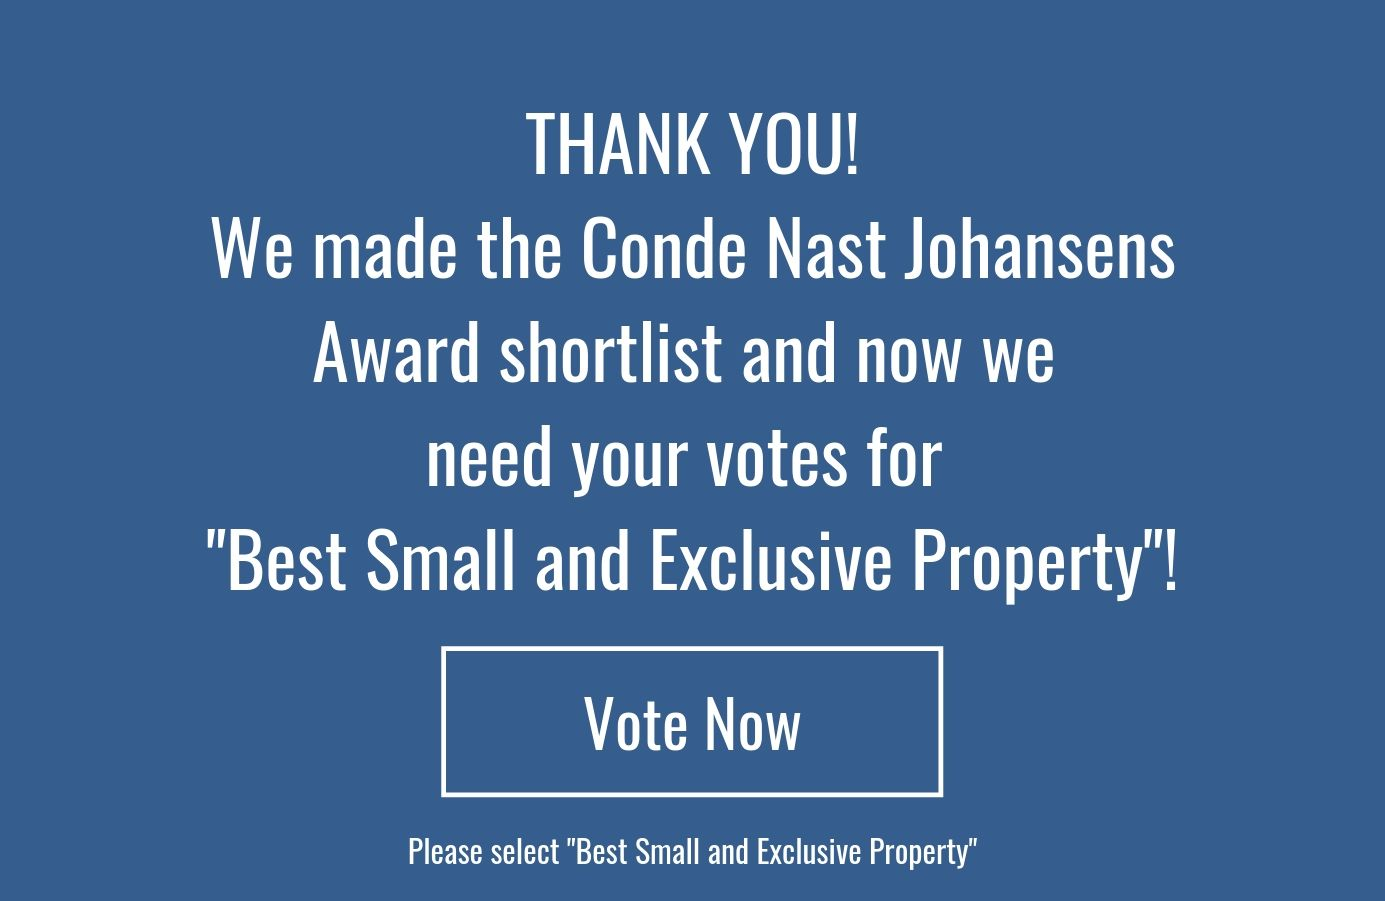 Thank You! We made the Conde Nast Johansens Award shortlist and now we need your votes for _Best Small and Exclusive Property_!